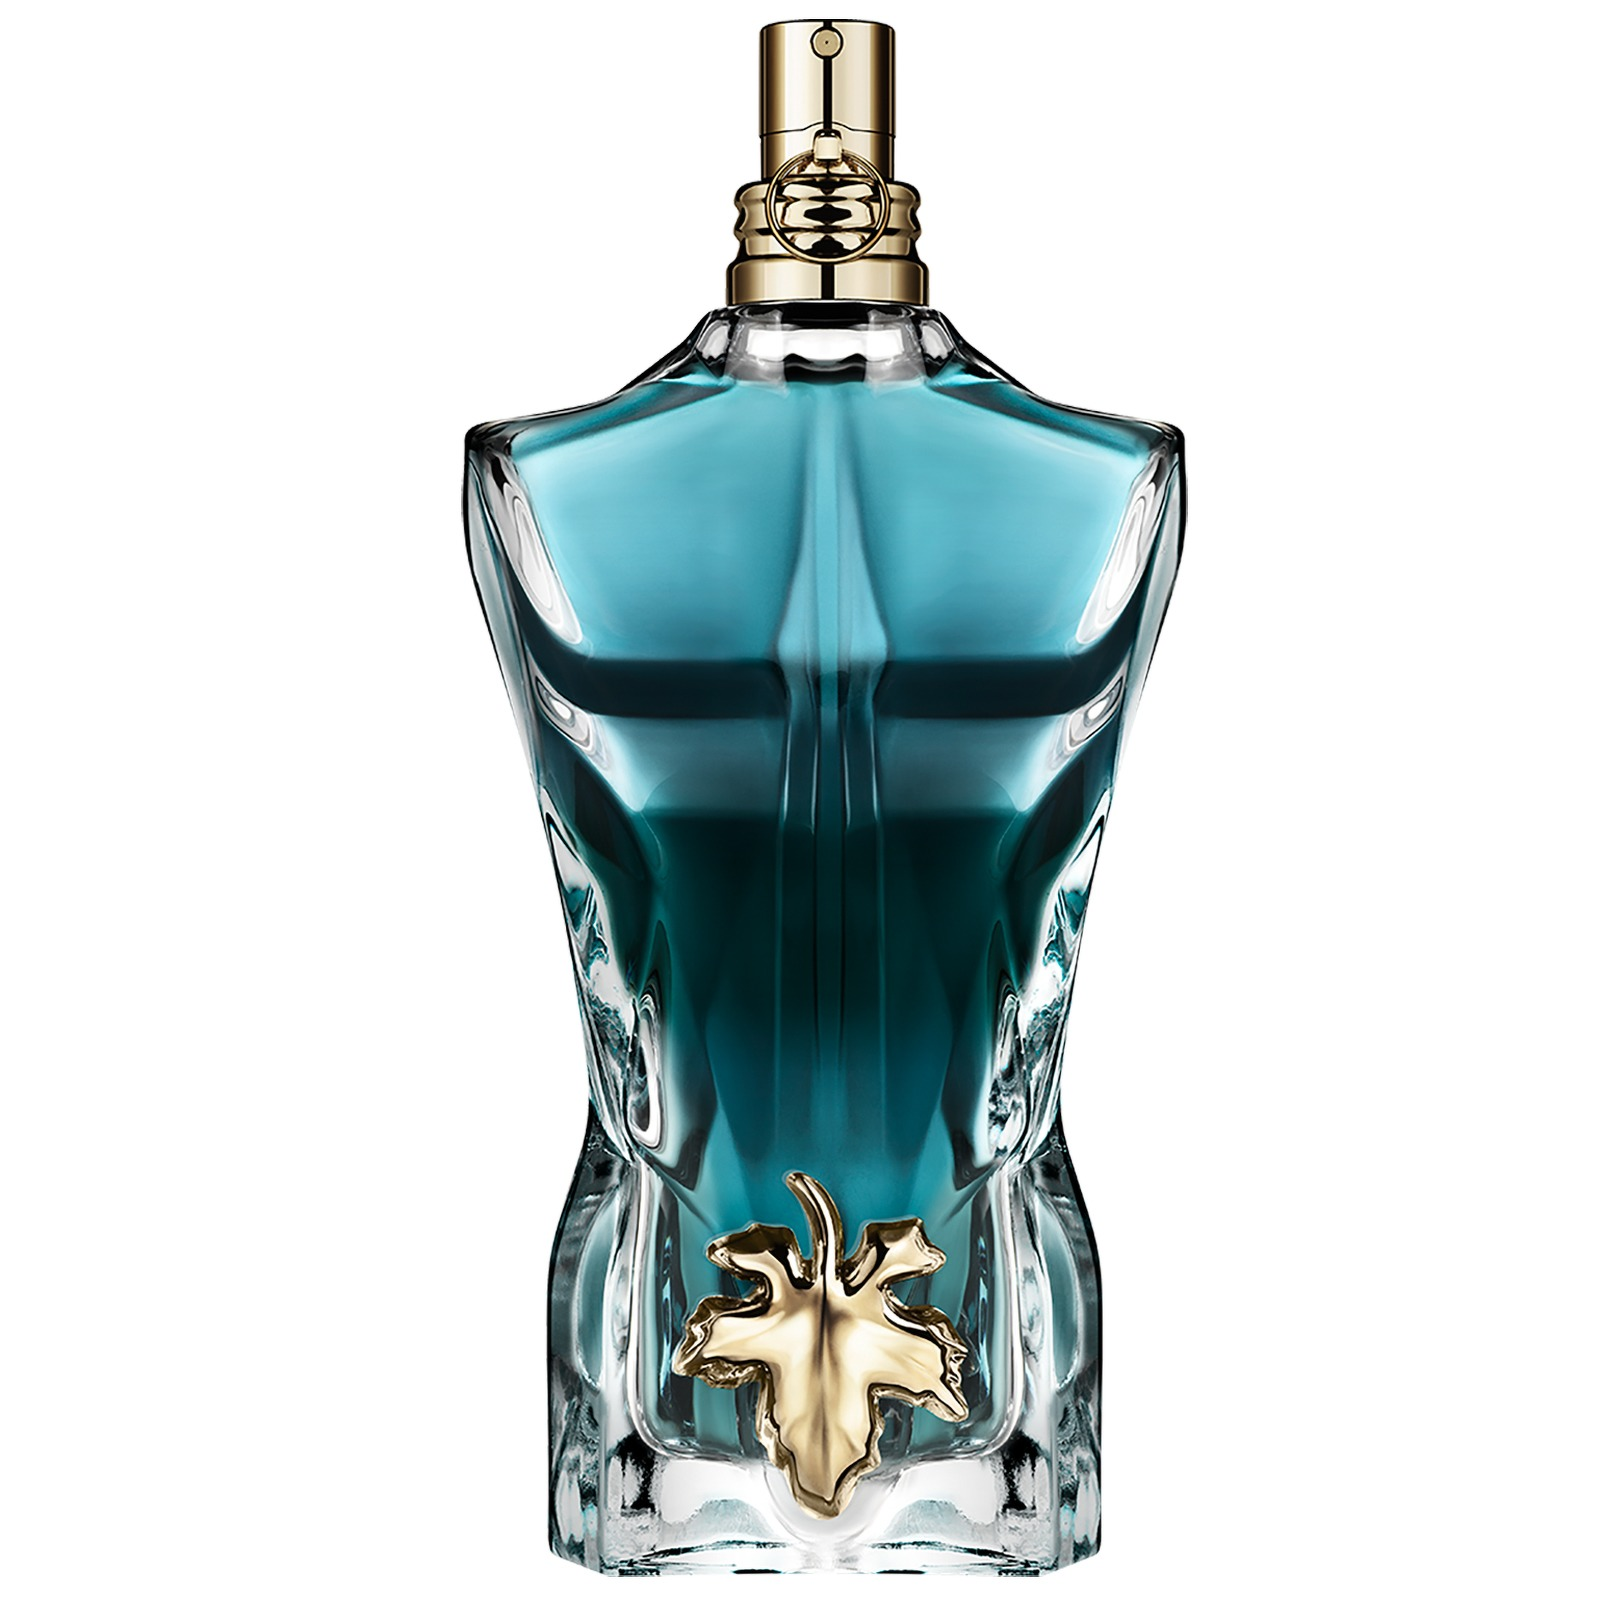 Jean Paul Gaultier Le Beau Eau de Toilette Spray 125ml